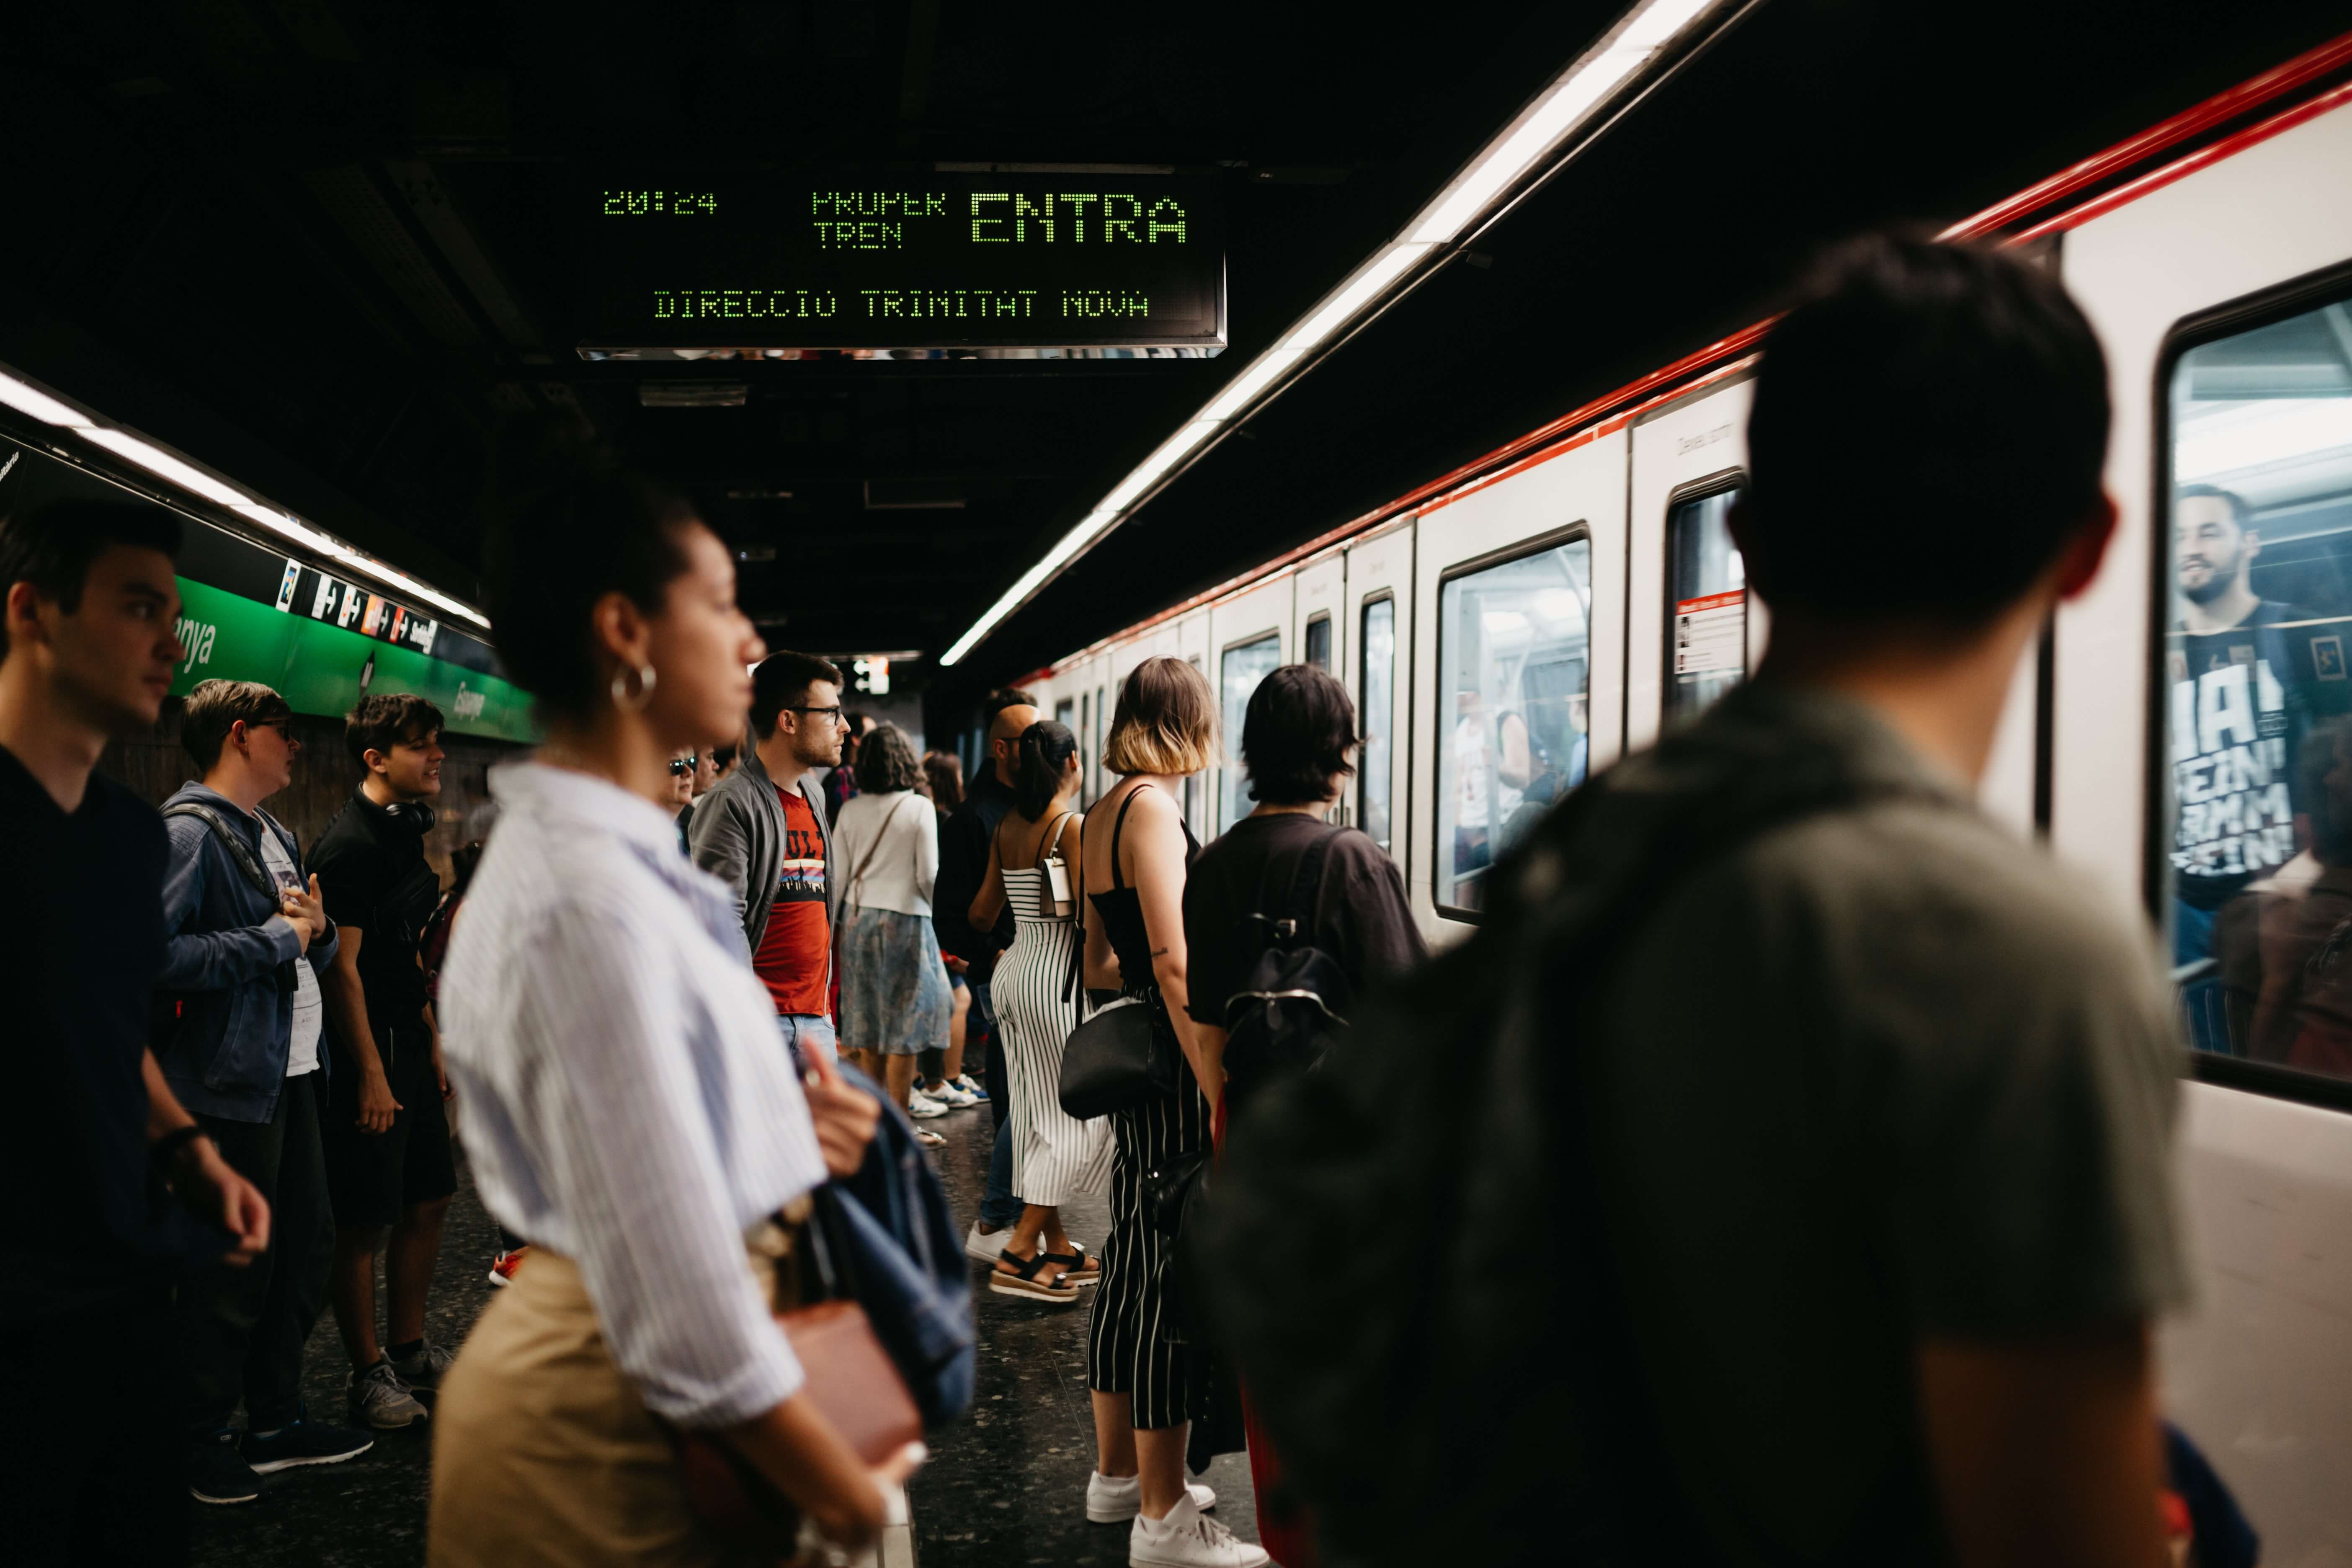 barcelona metro prices and crowds